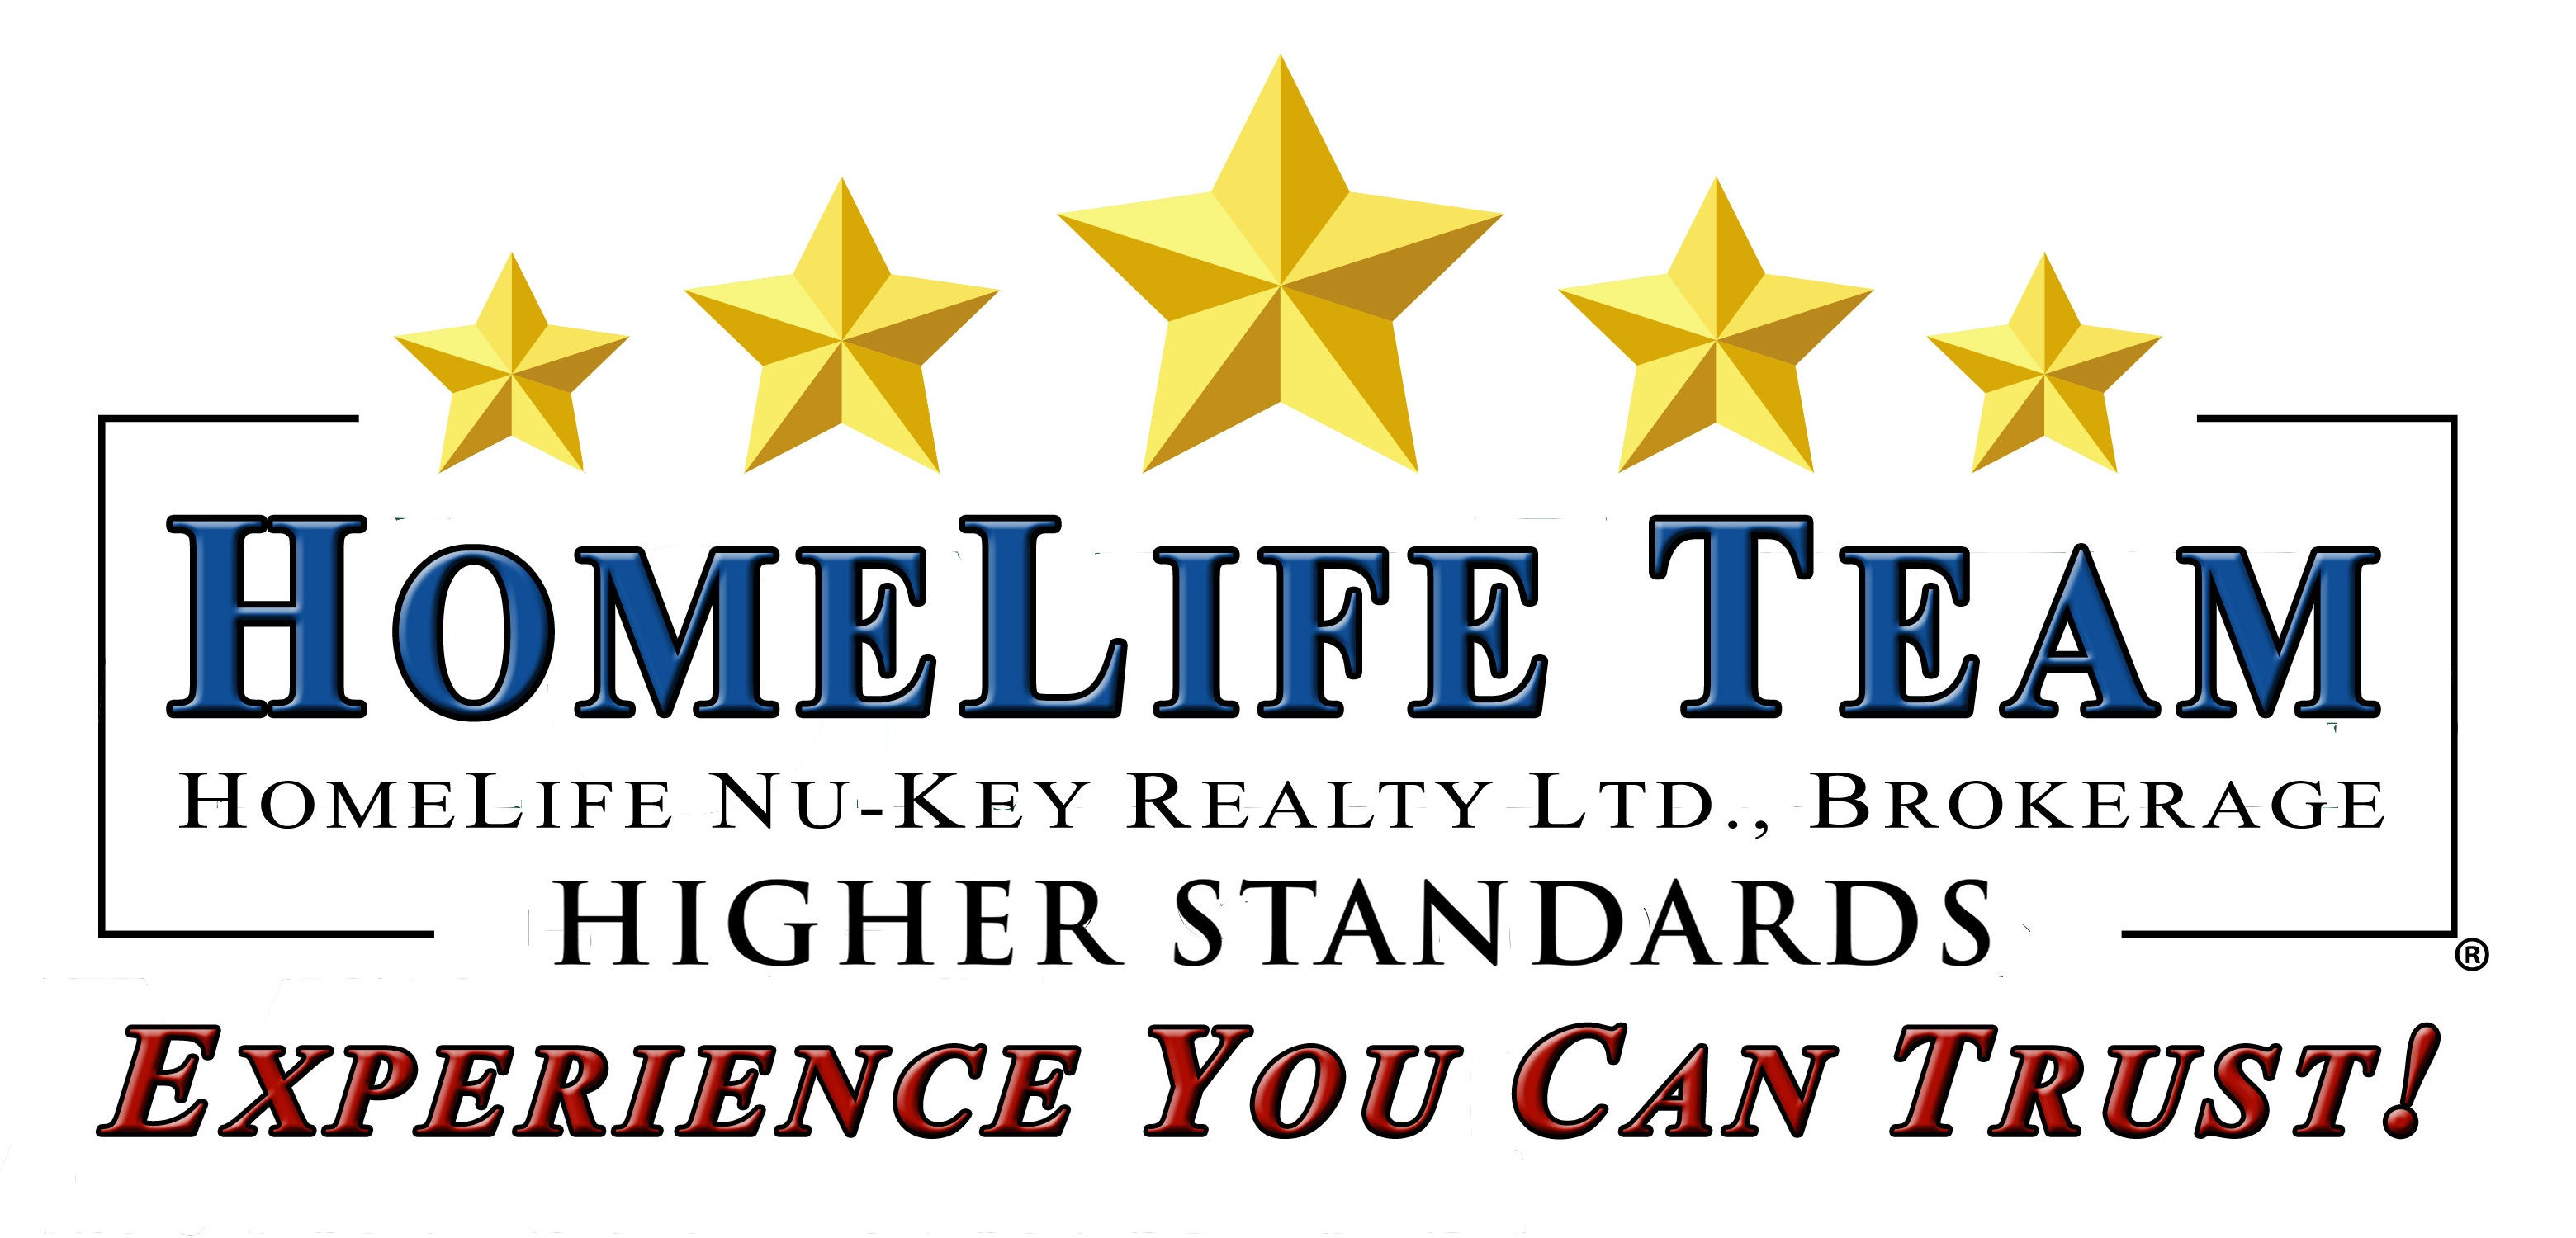 USE-NEW 3D HOMELIFE TEAM WITH STARS.jpg